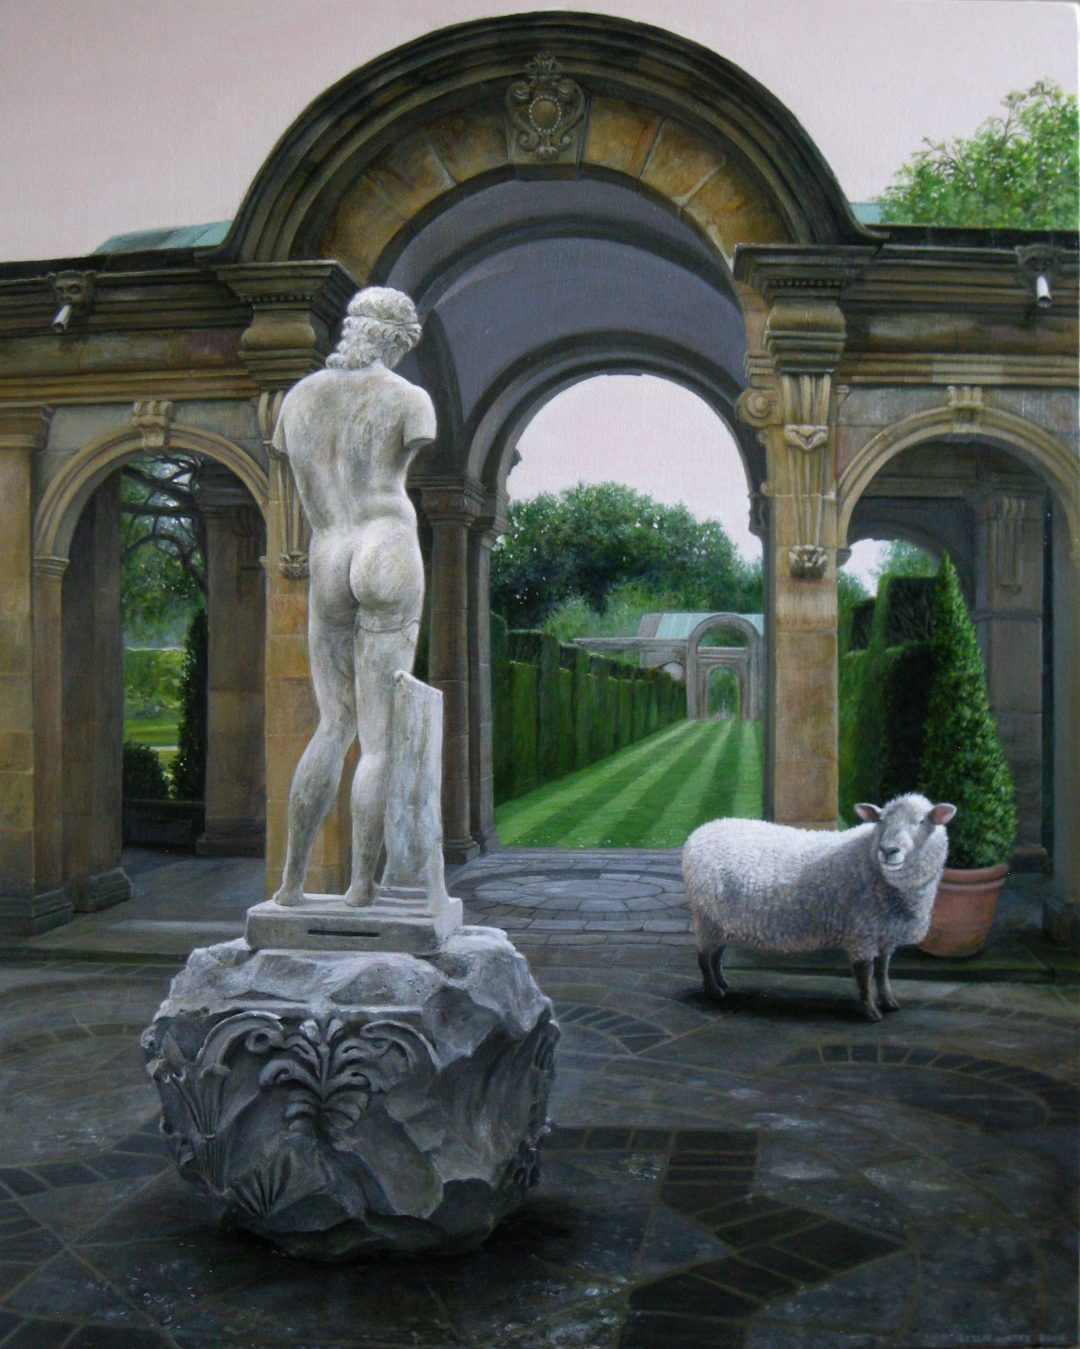 "'The Gardens at Hever' Leslie Watts Acrylic on birch panel, 36 x 30"", 2014"